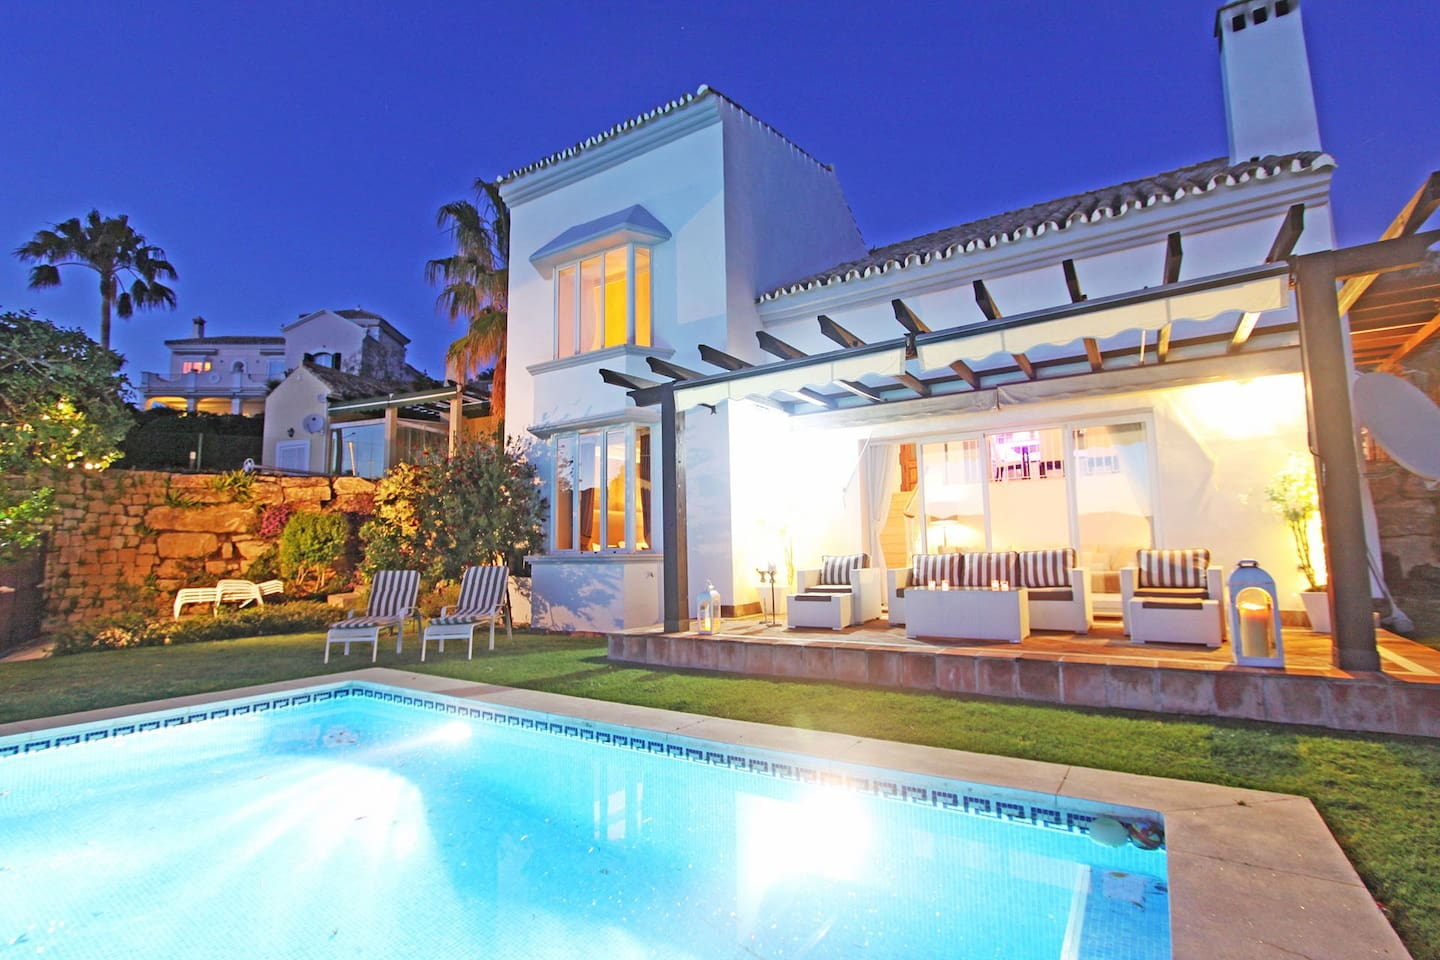 Villa new  refurbished with brand new beds and living room , outdoor lounge area